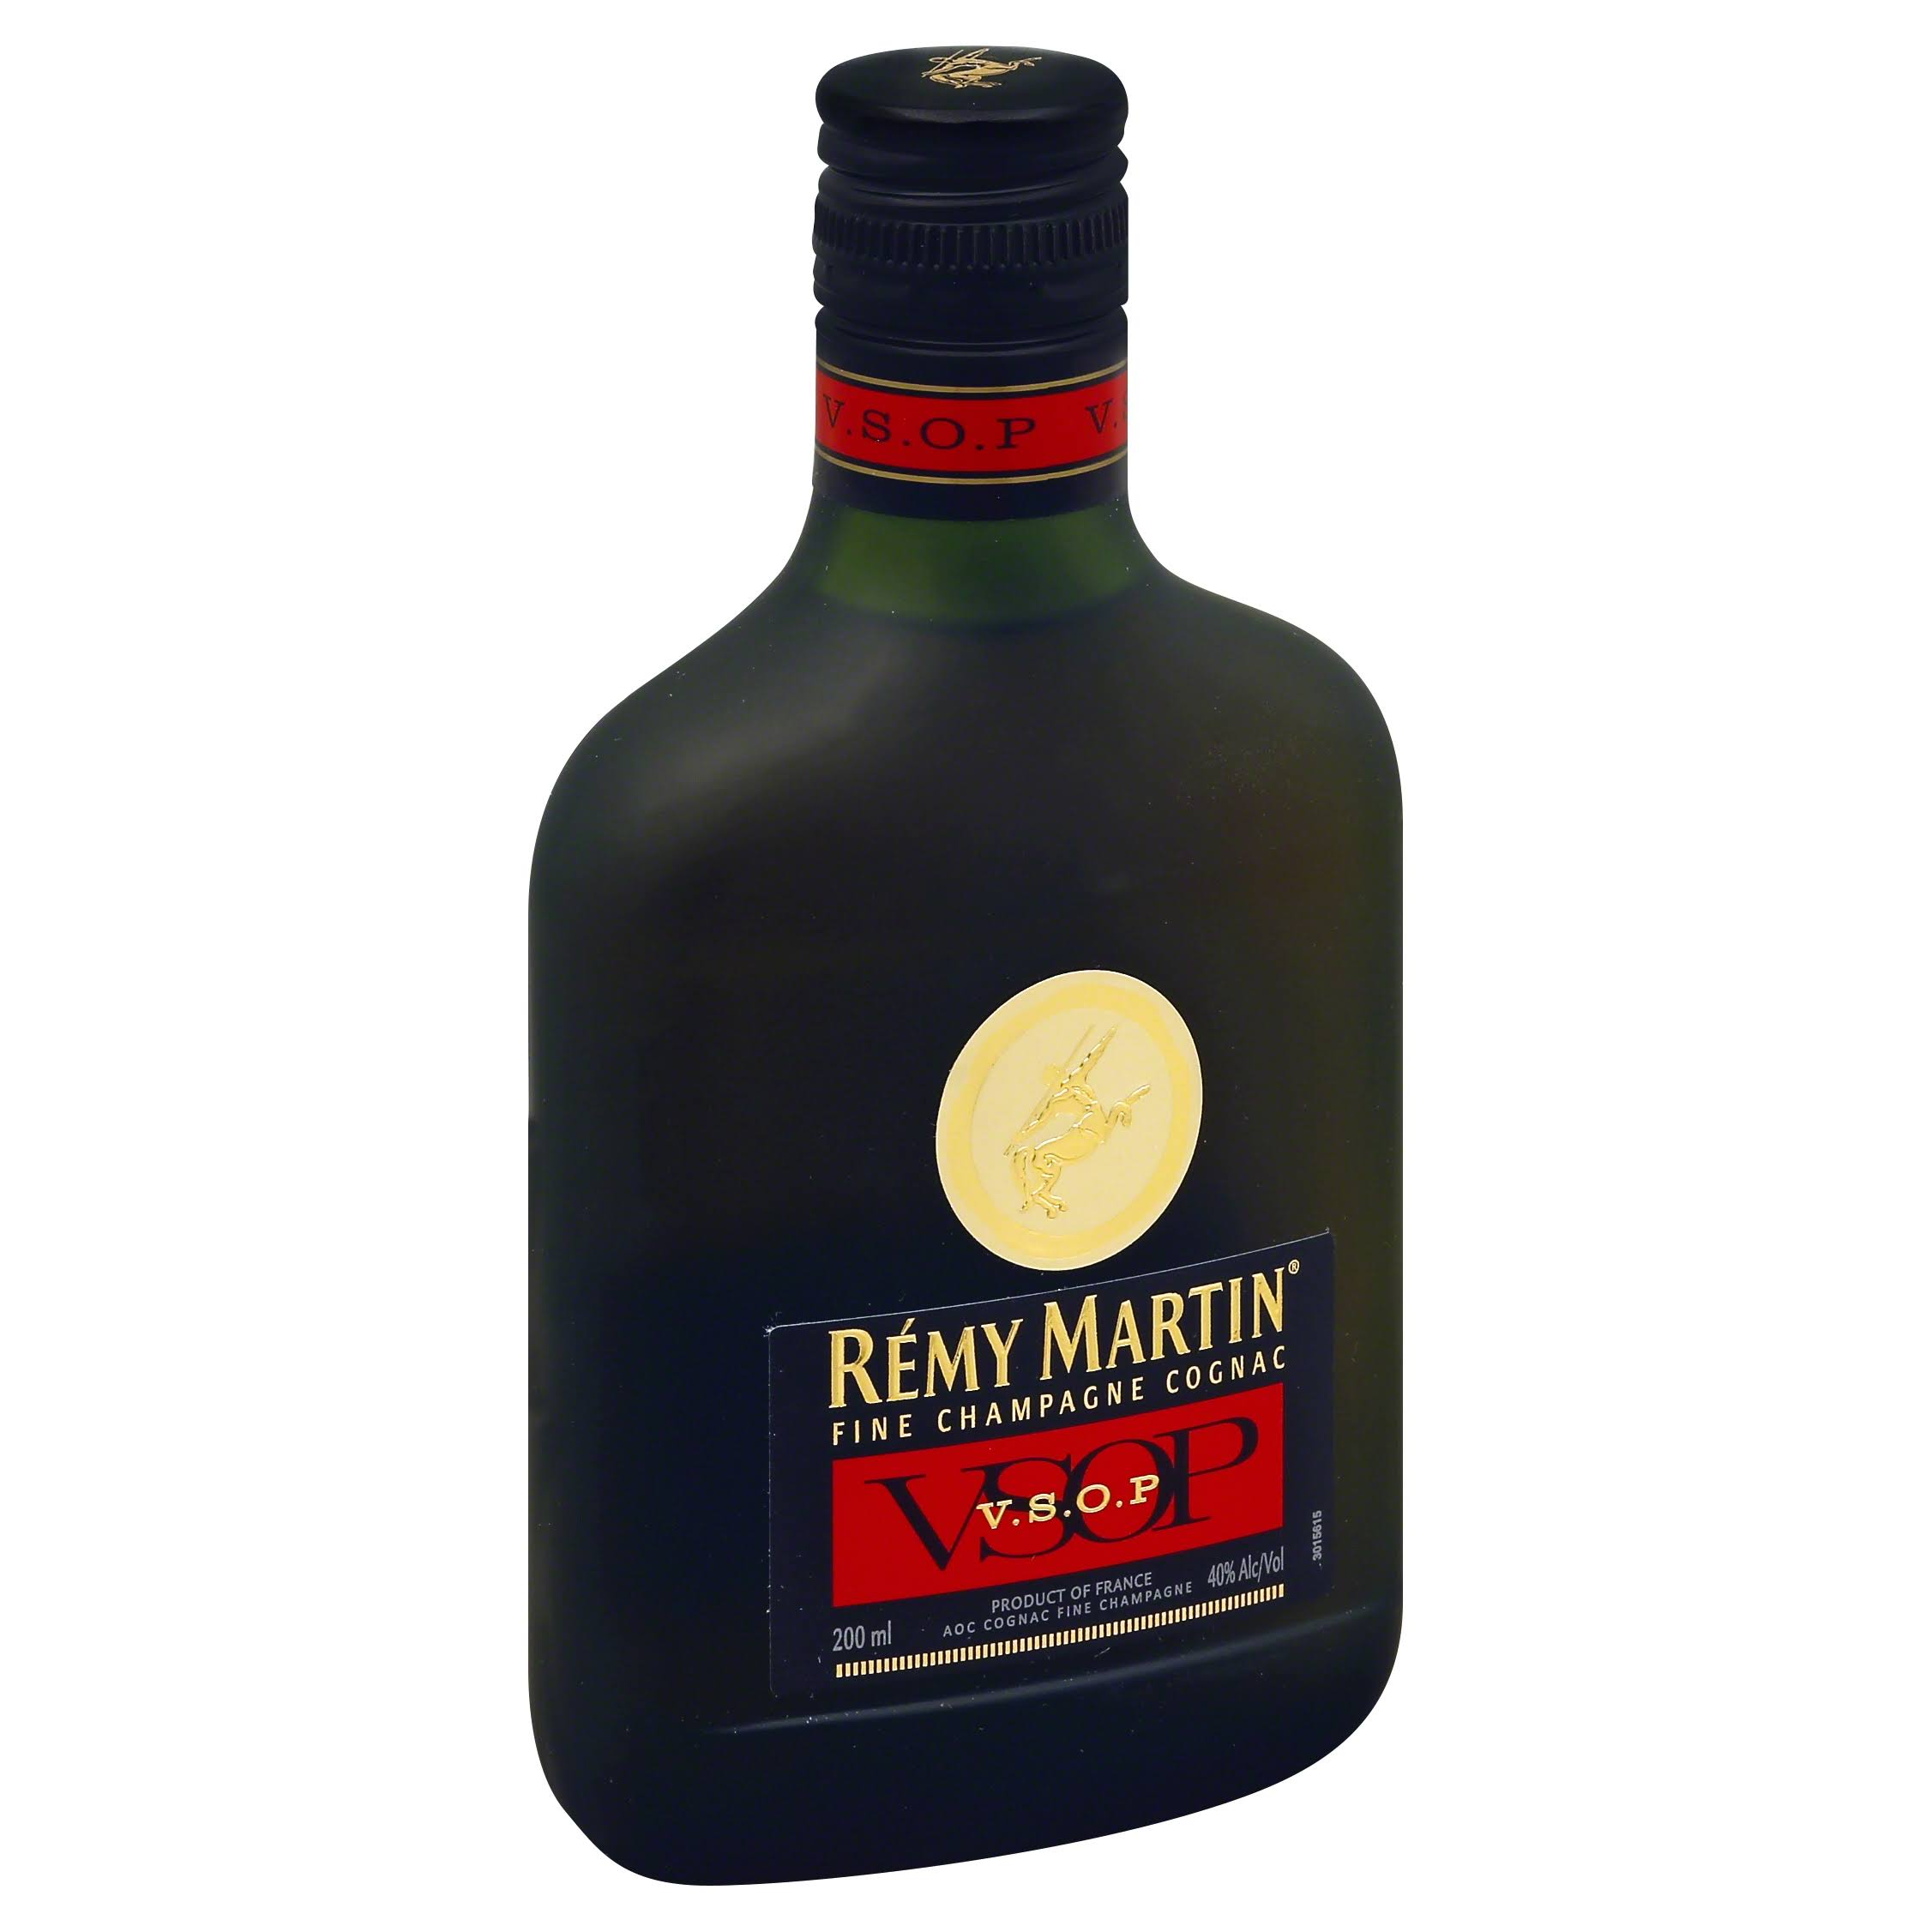 Remy Martin V.S.O.P. Cognac - 200 ml bottle